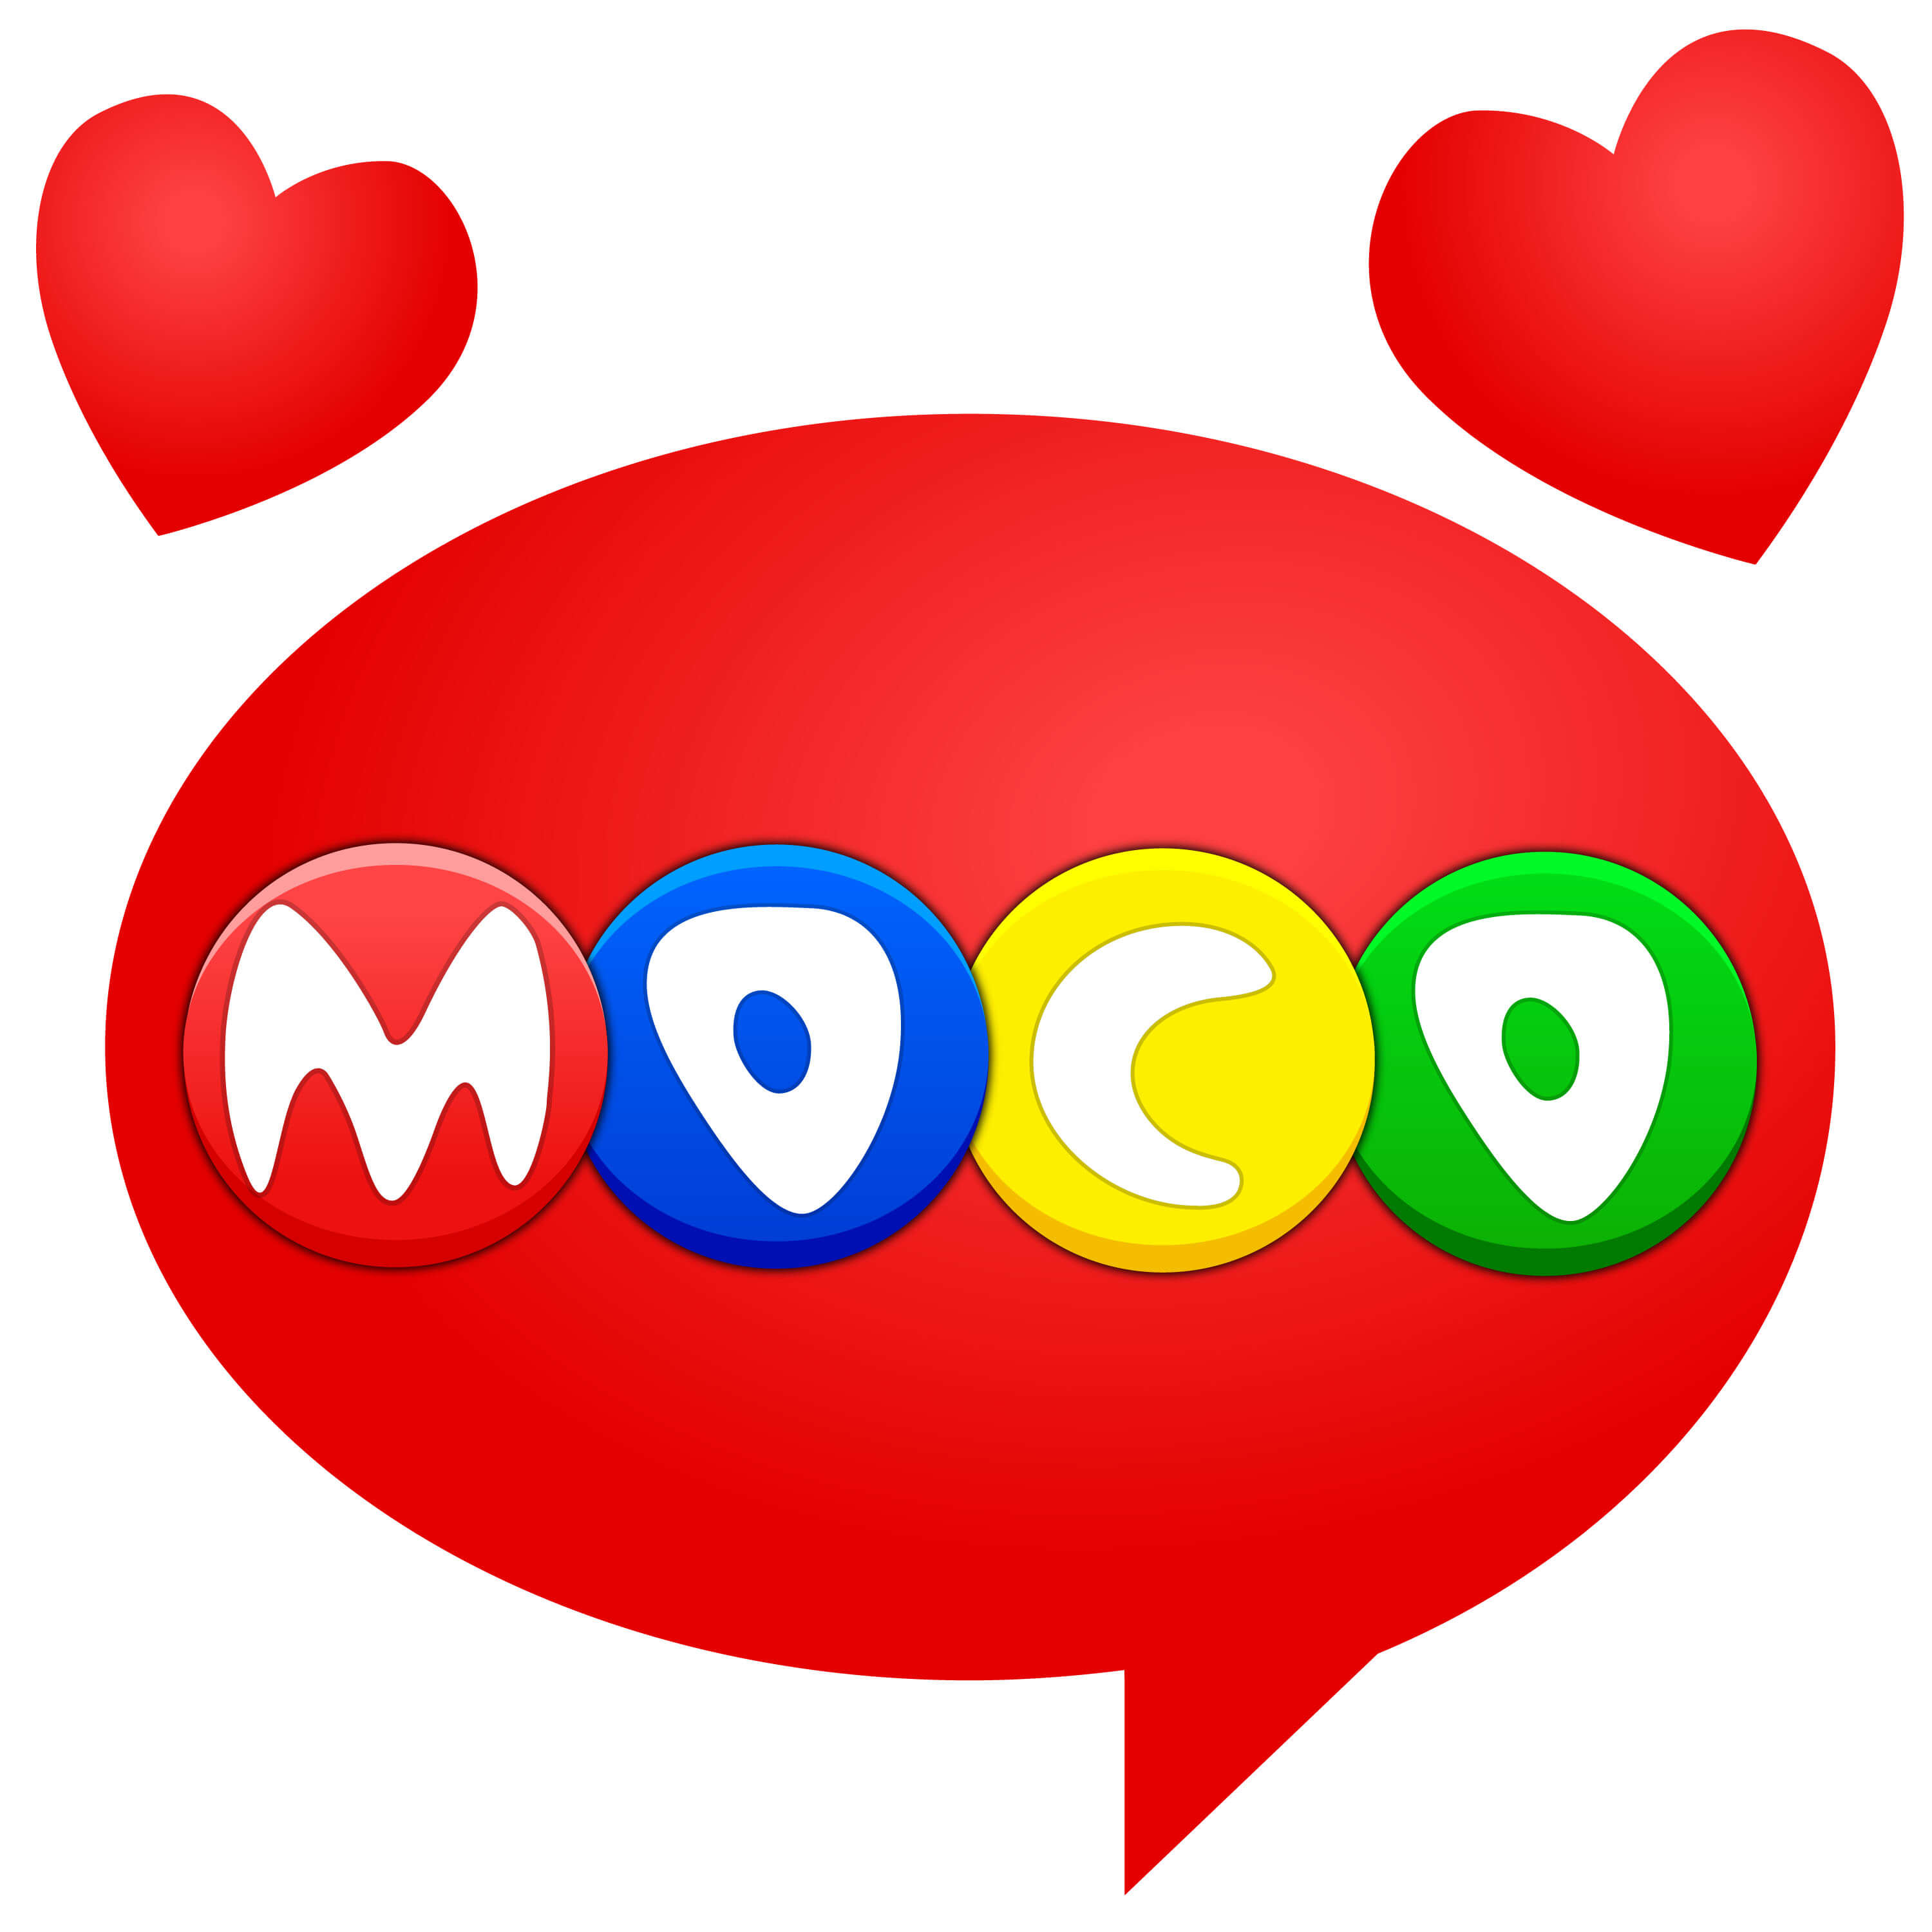 Mocospace Review July 2021: Good for Romance? - DatingScout.hk